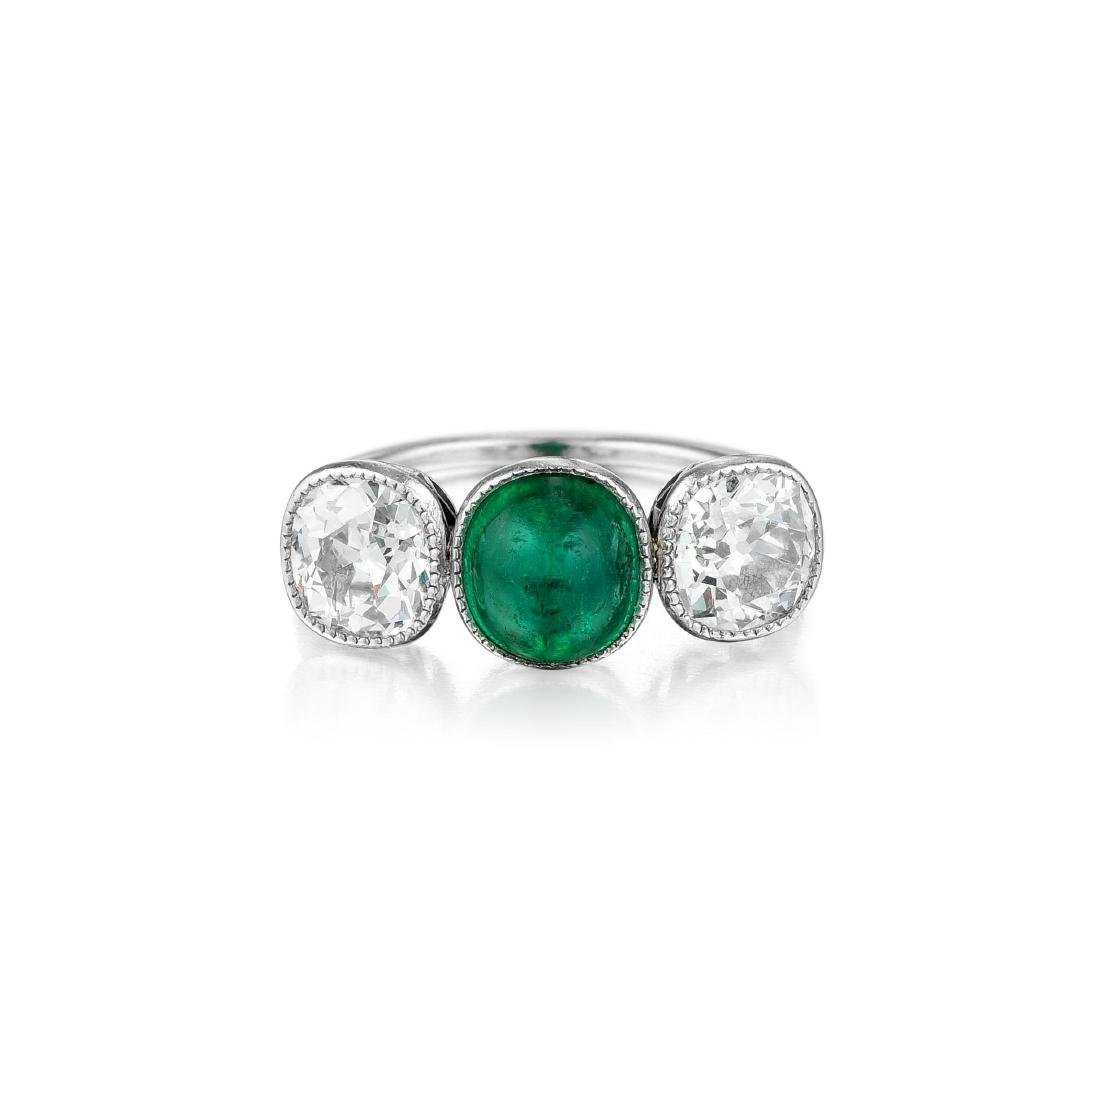 An Art Deco Platinum Emerald and Diamond Ring